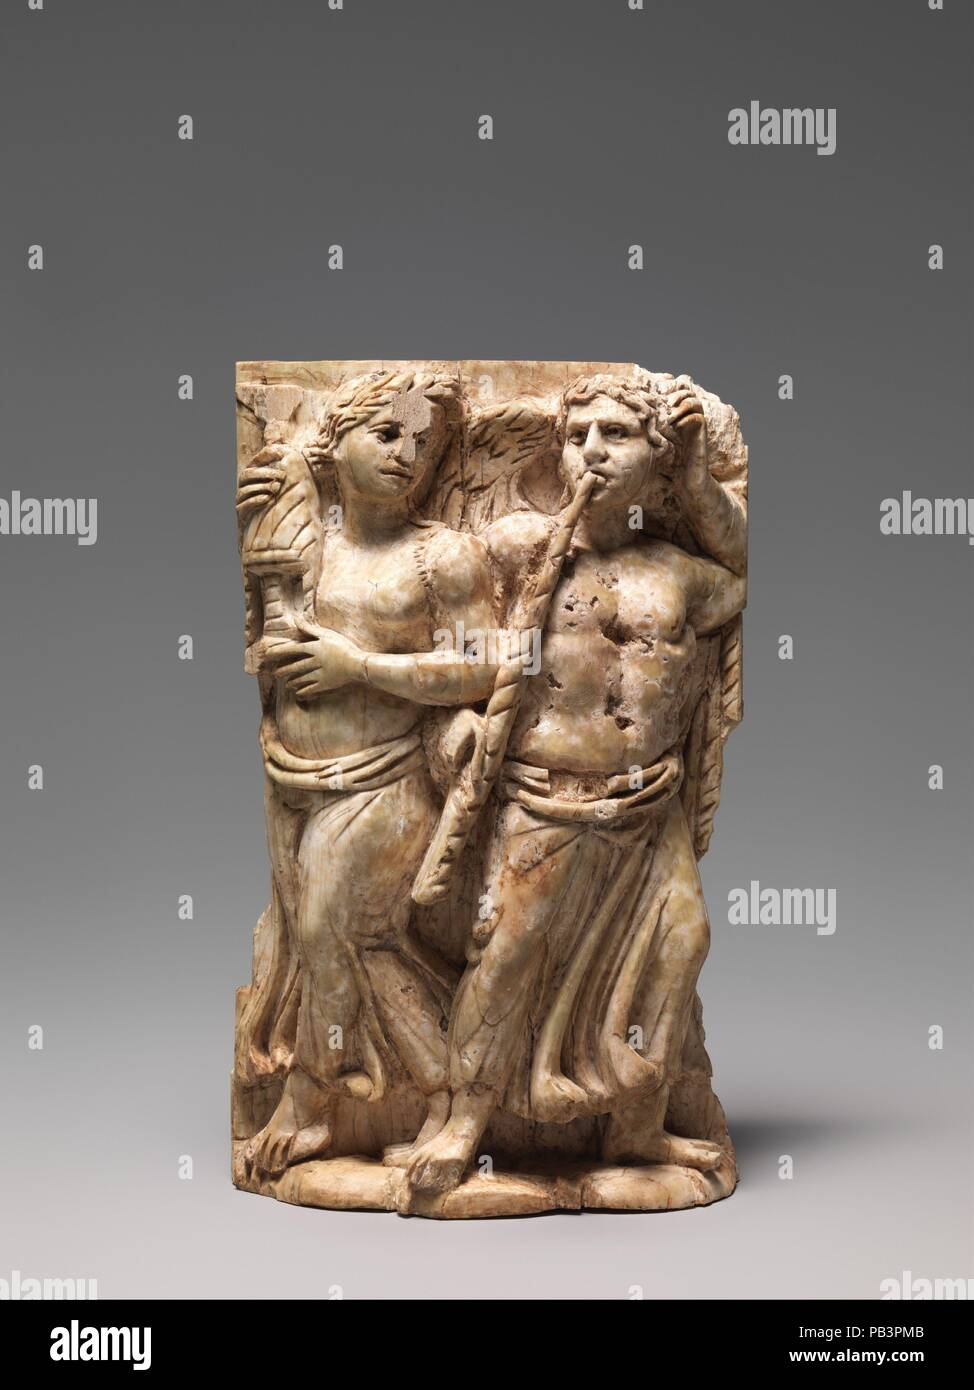 Bone Carving High Resolution Stock Photography And Images Alamy